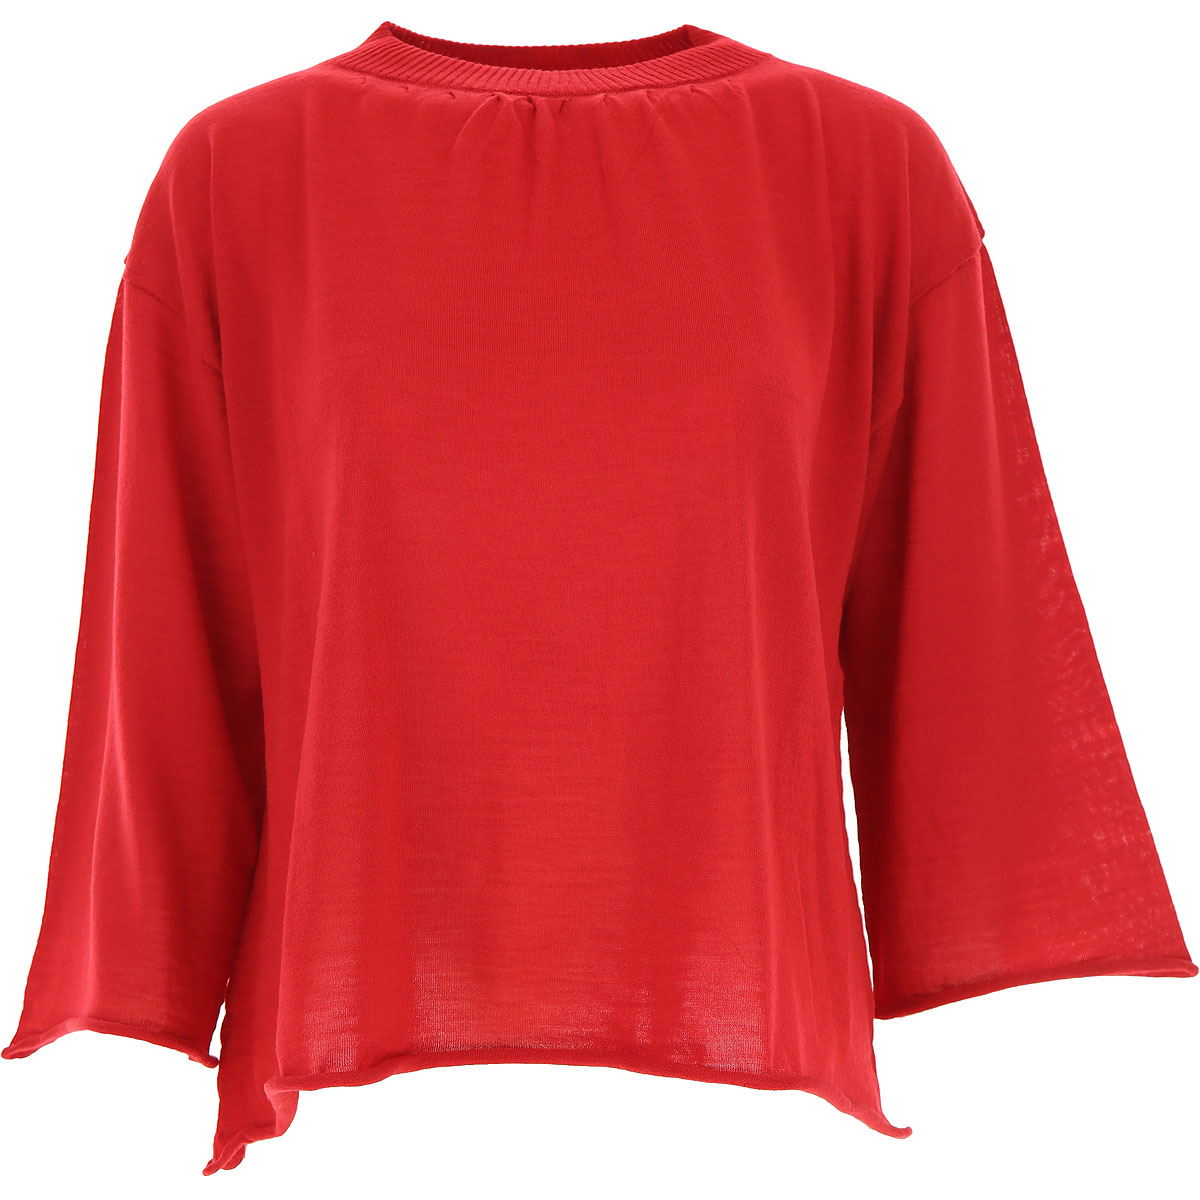 Liviana Conti Sweater for Women Jumper On Sale, Red, Virgin wool, 2019, 10 4 6